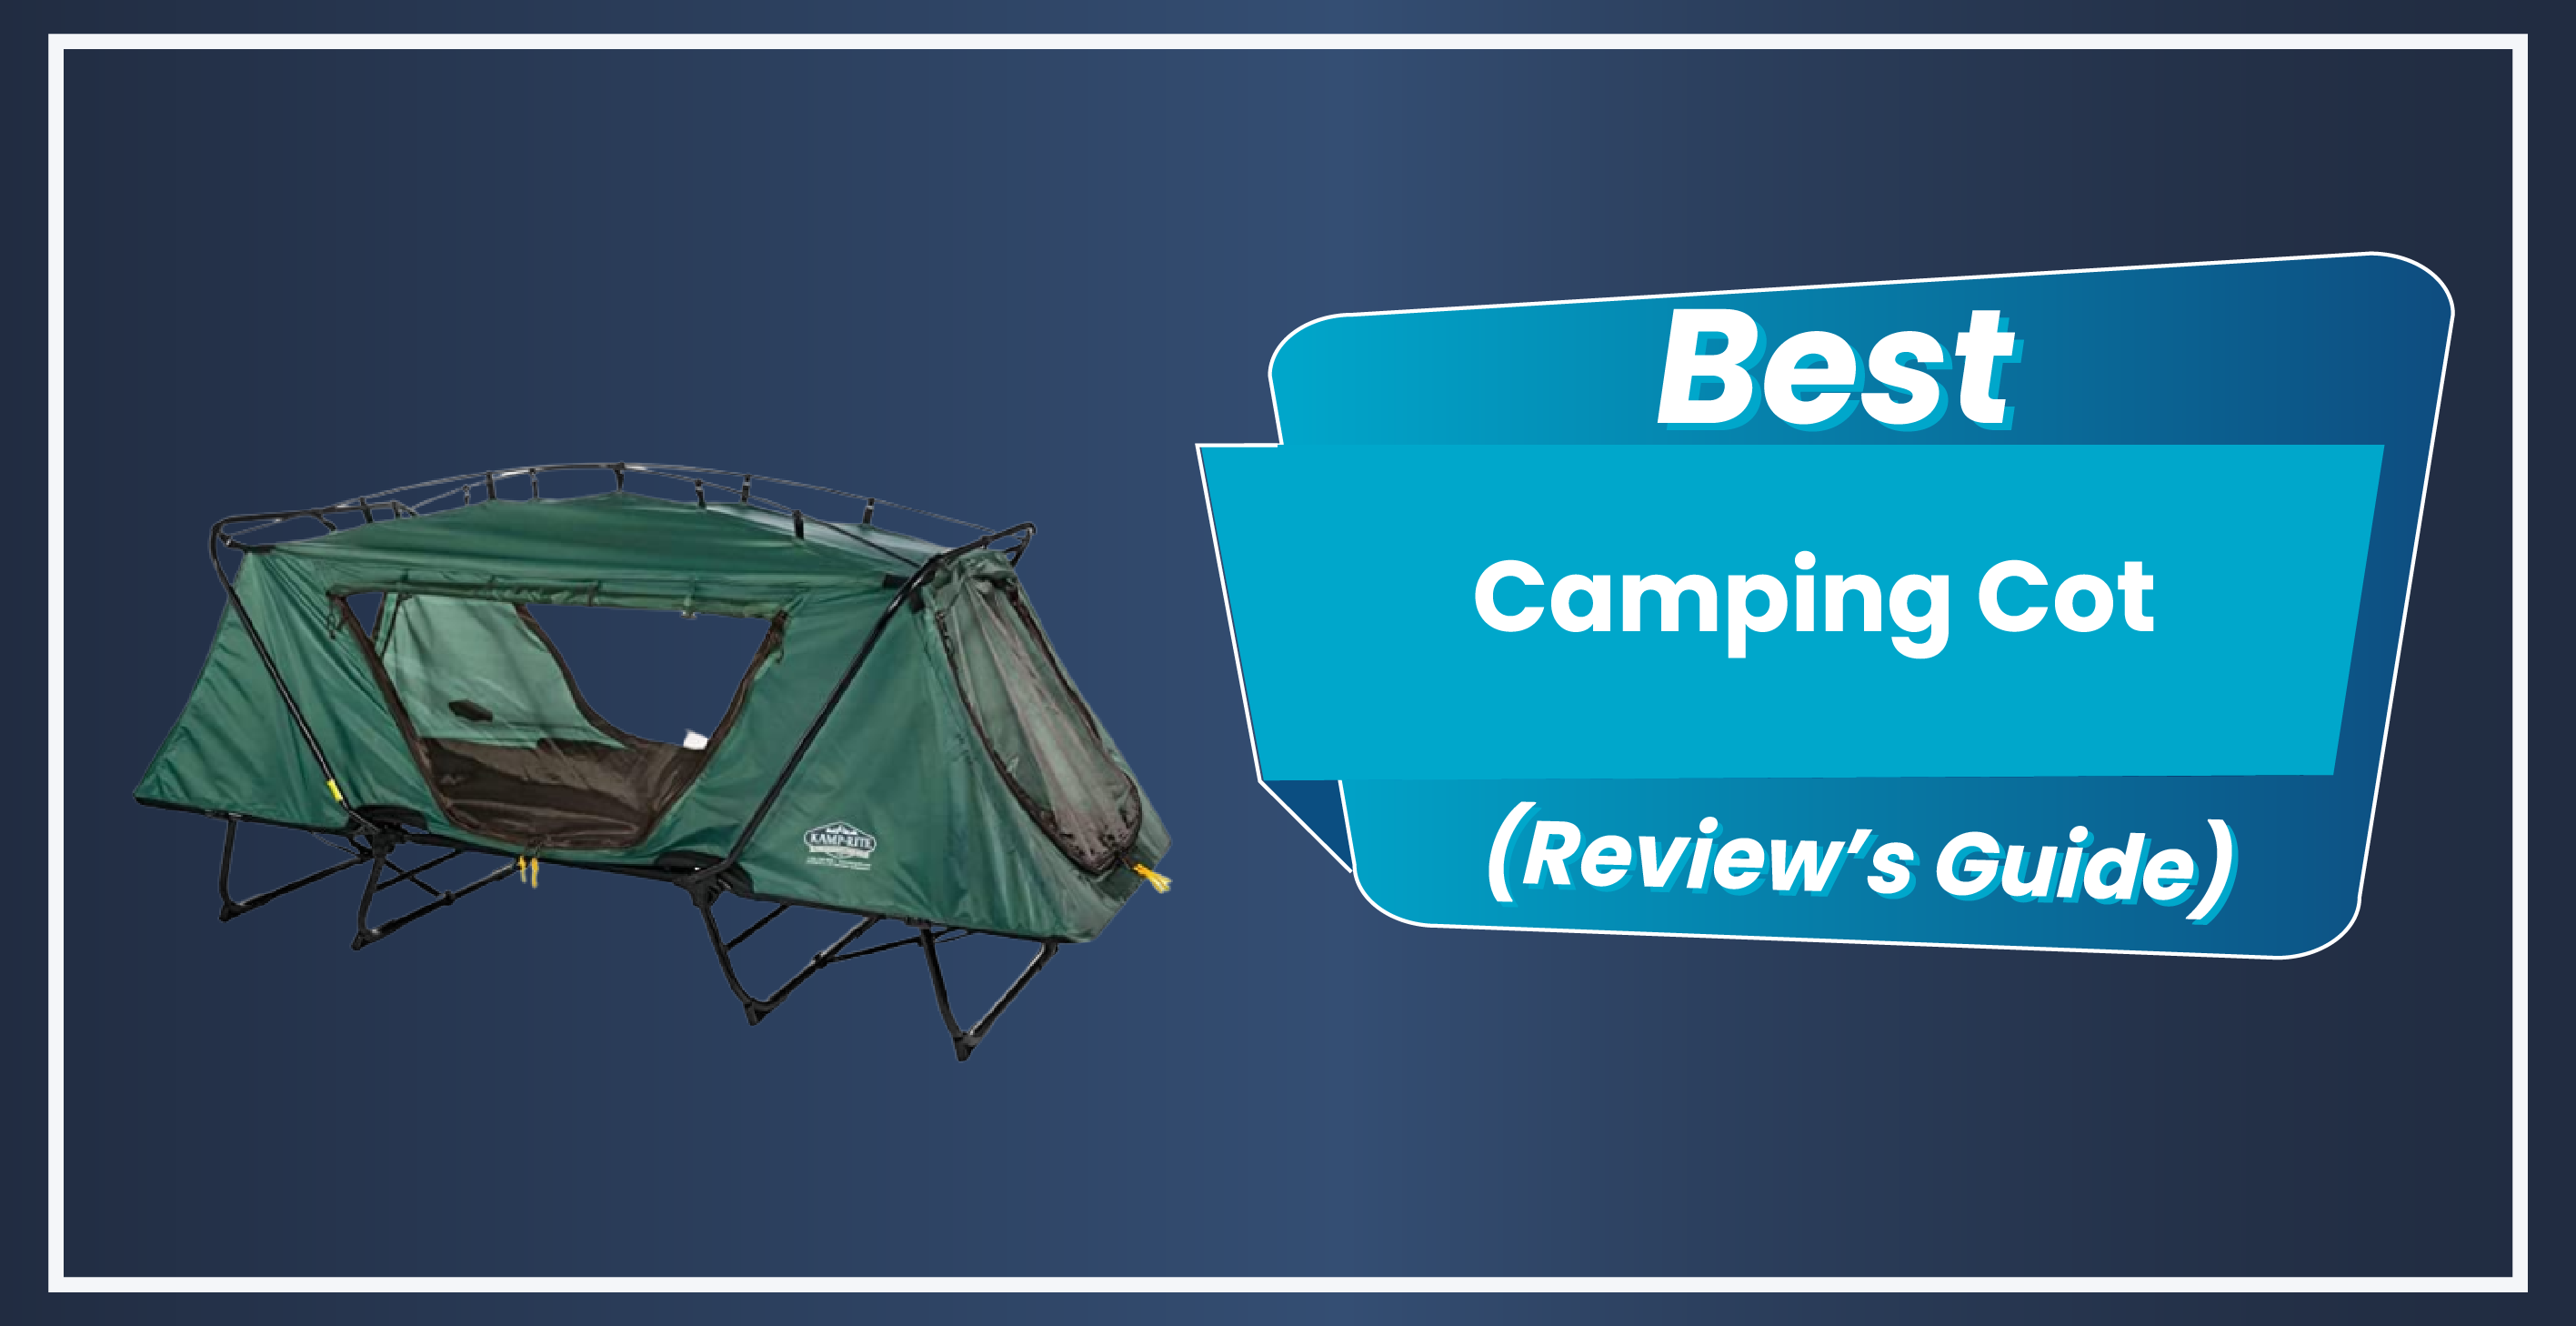 8 Best Camping Cot